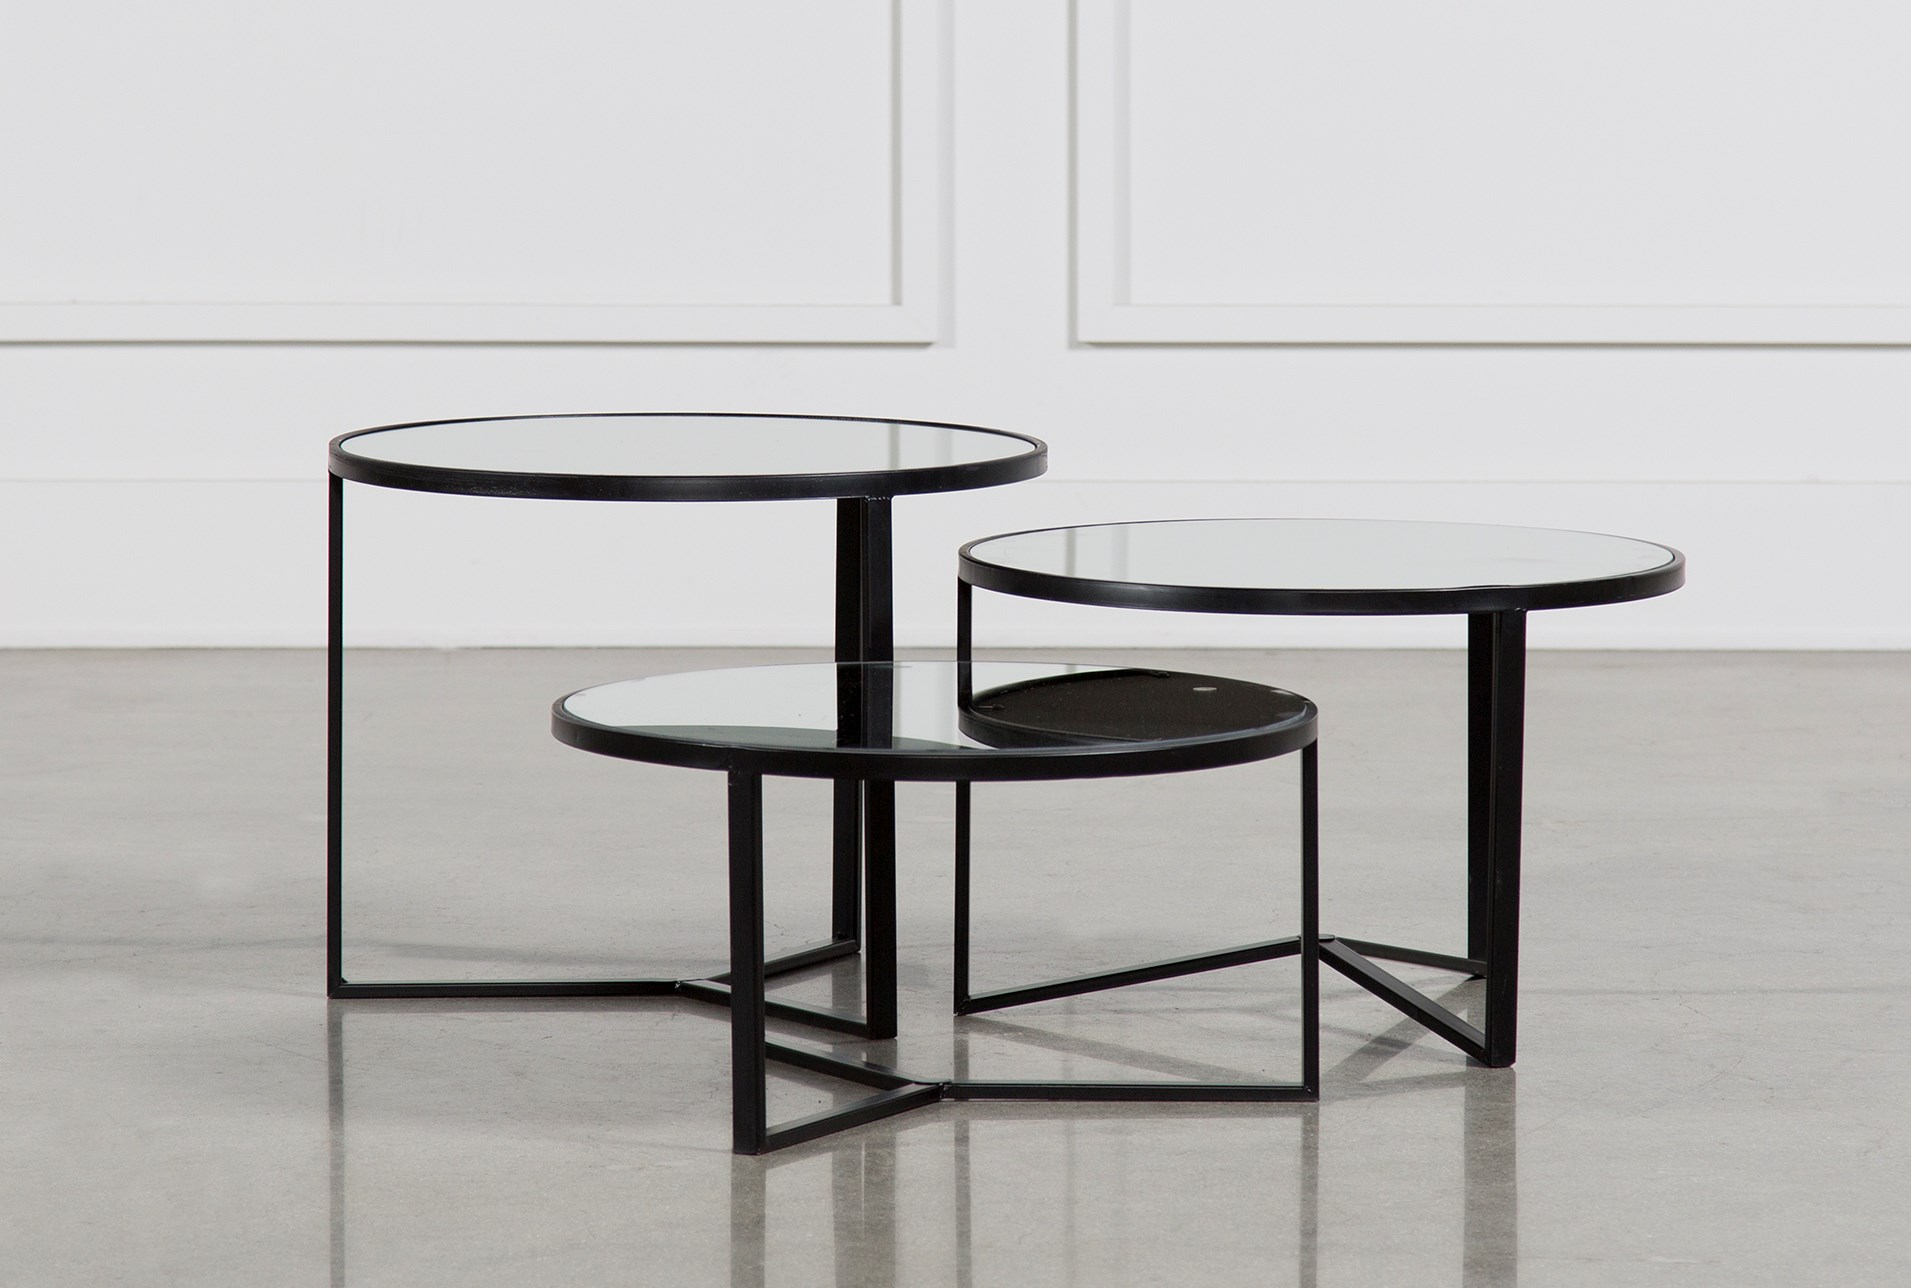 Black Coffee Tables to Fit Your Home Decor